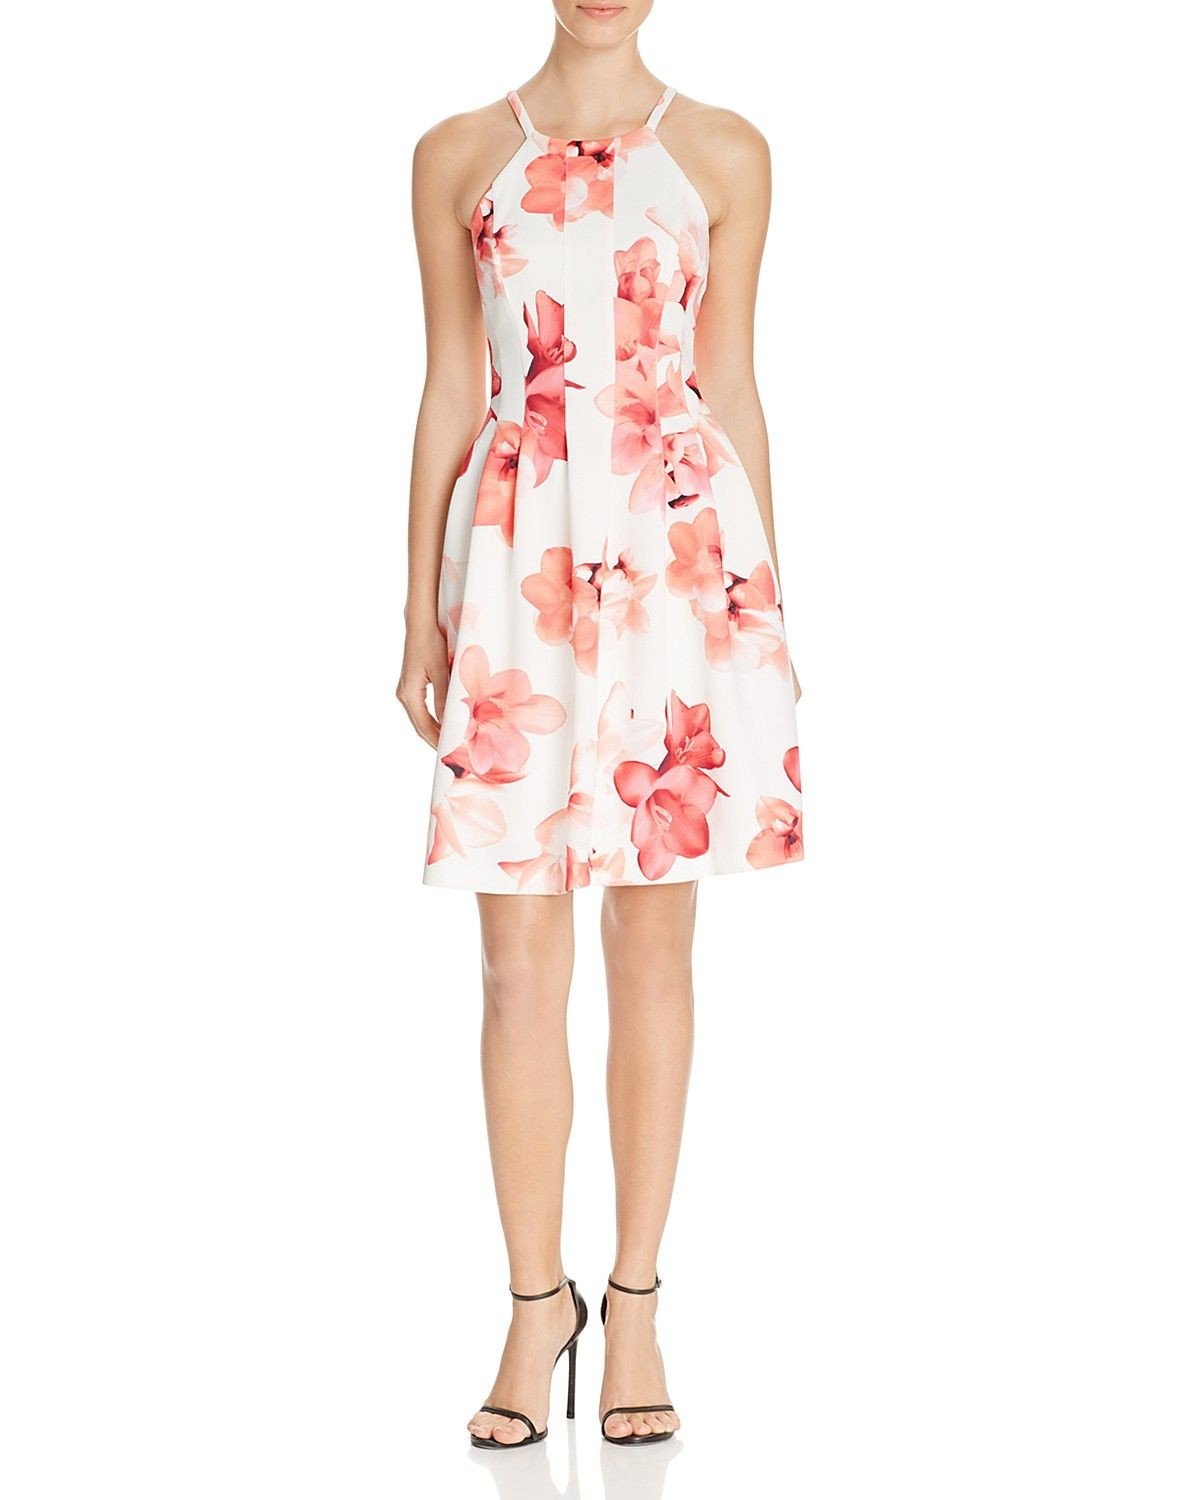 7204277072a Calvin Klein Floral Fit and Flare Dress - 100% Bloomingdale s Exclusive